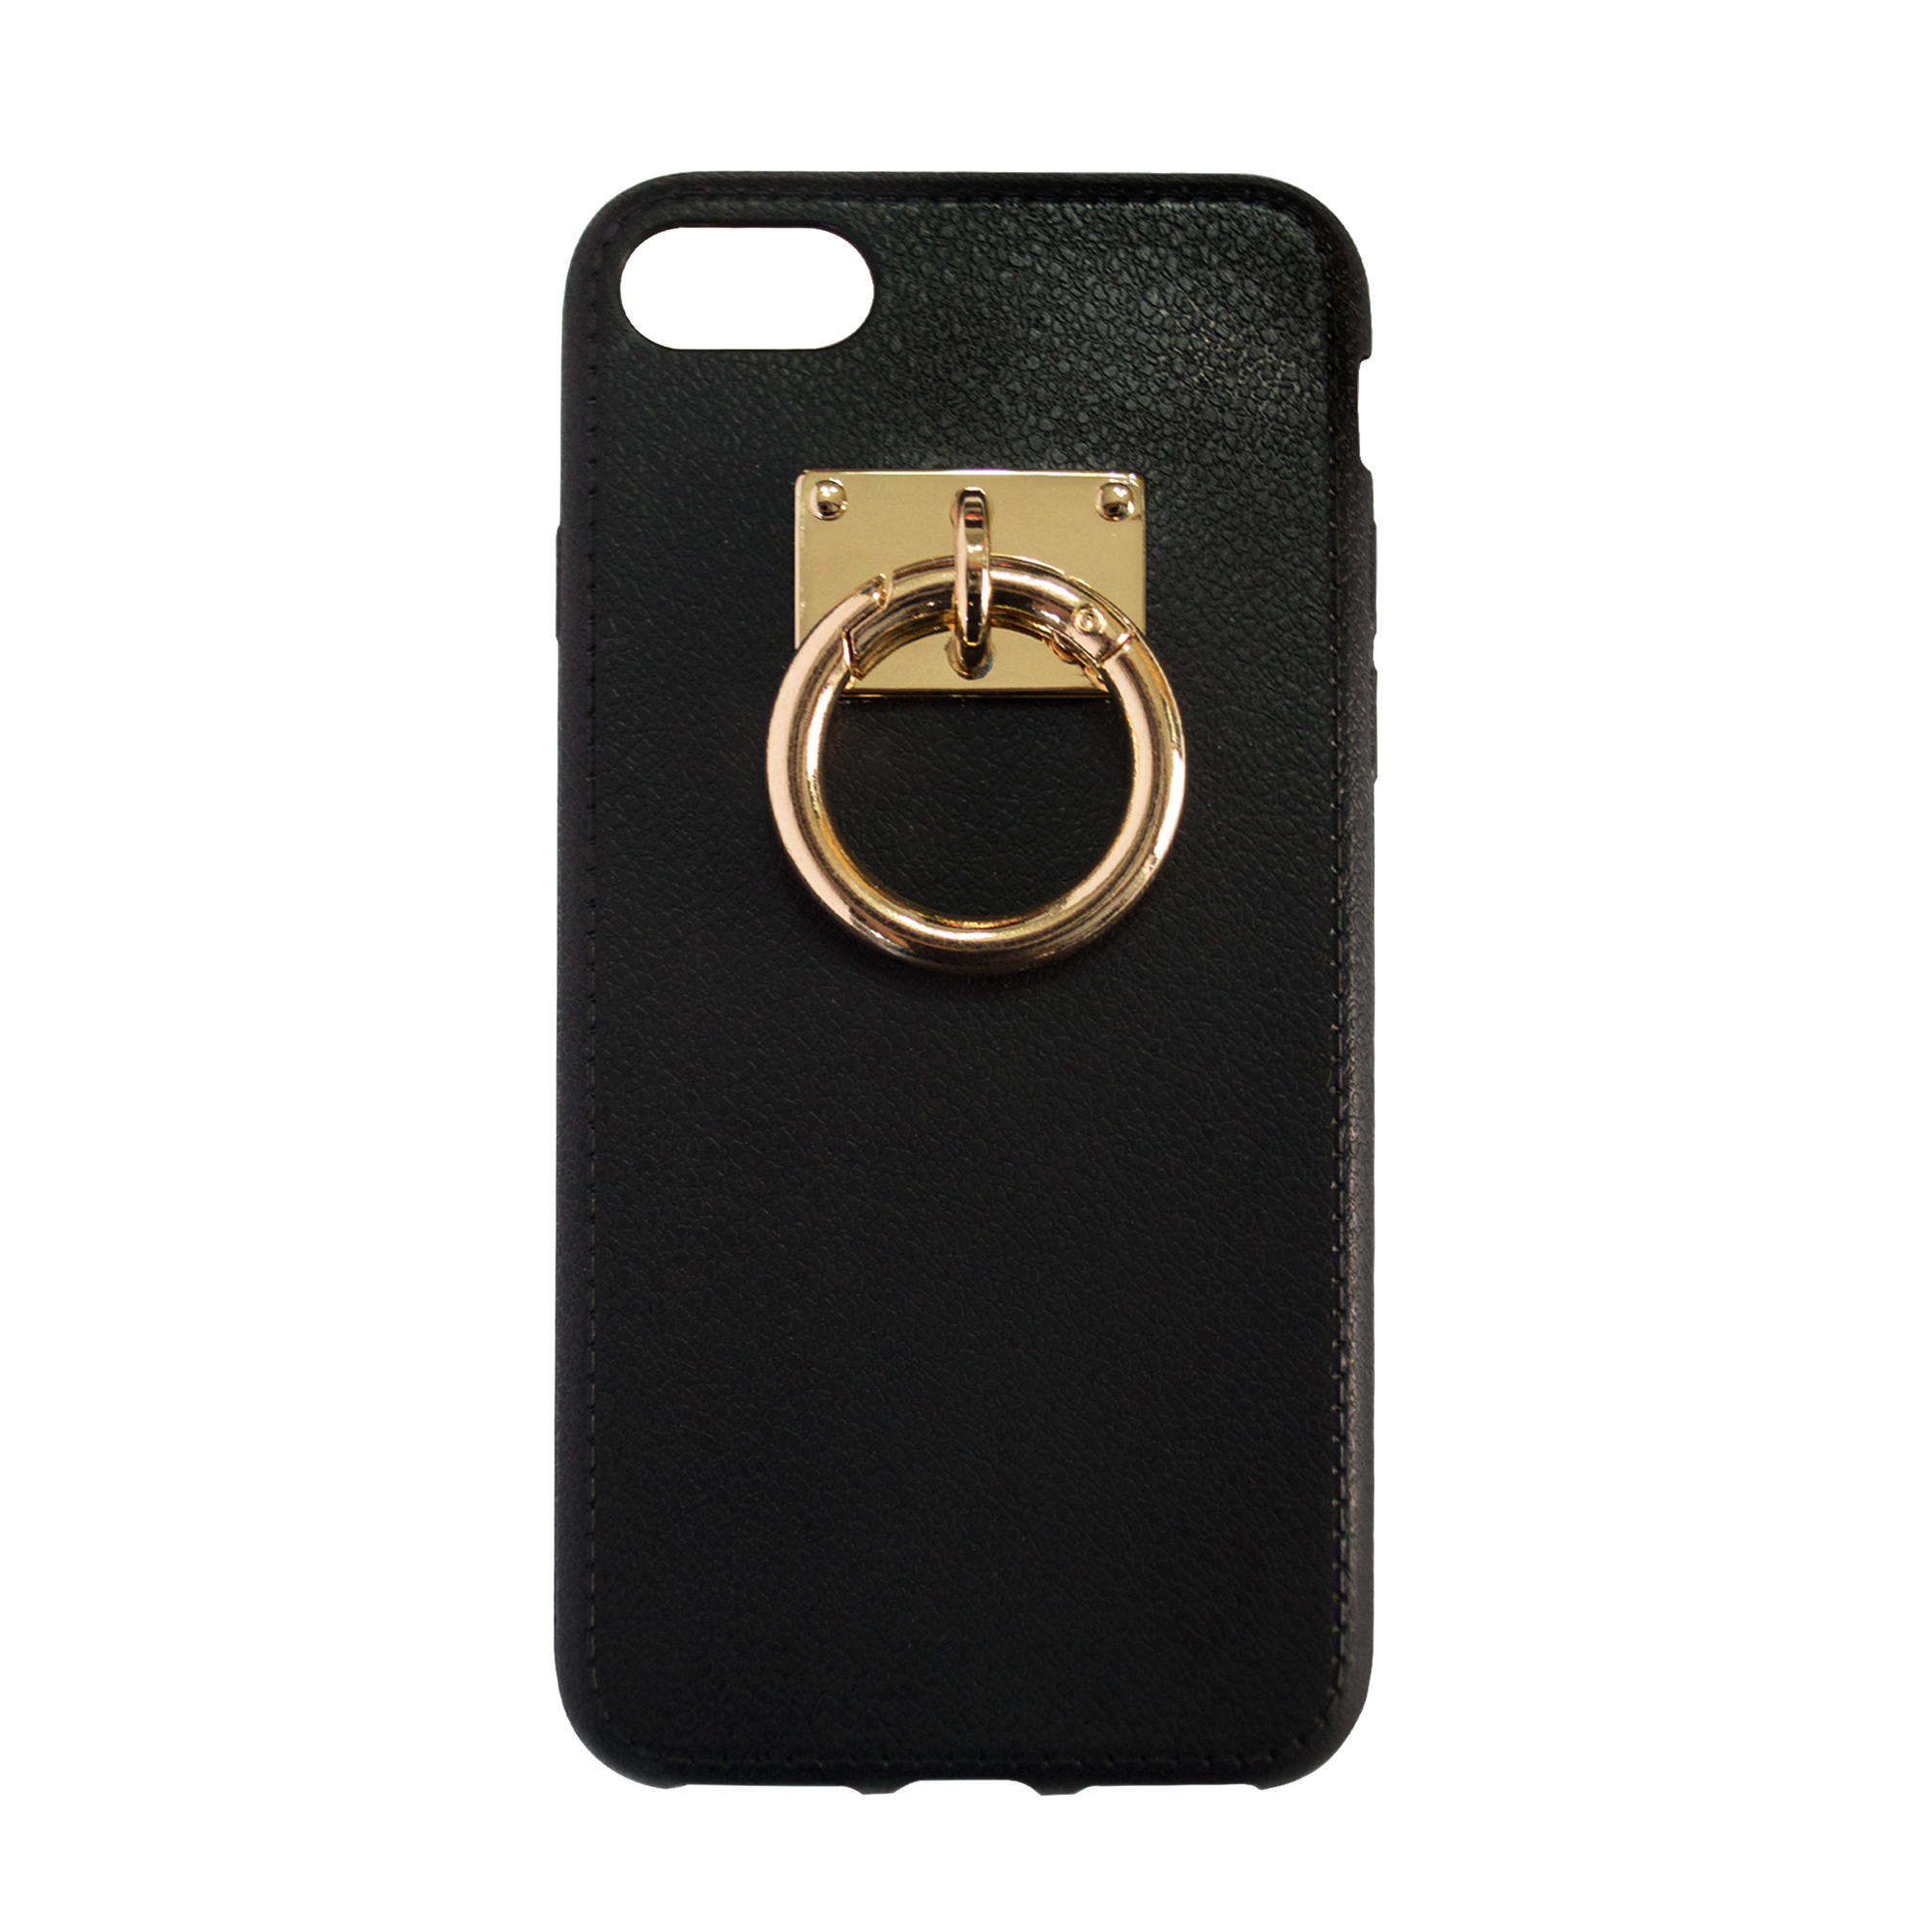 Manacle XL Case with Gold Hardware - Black Soft Case